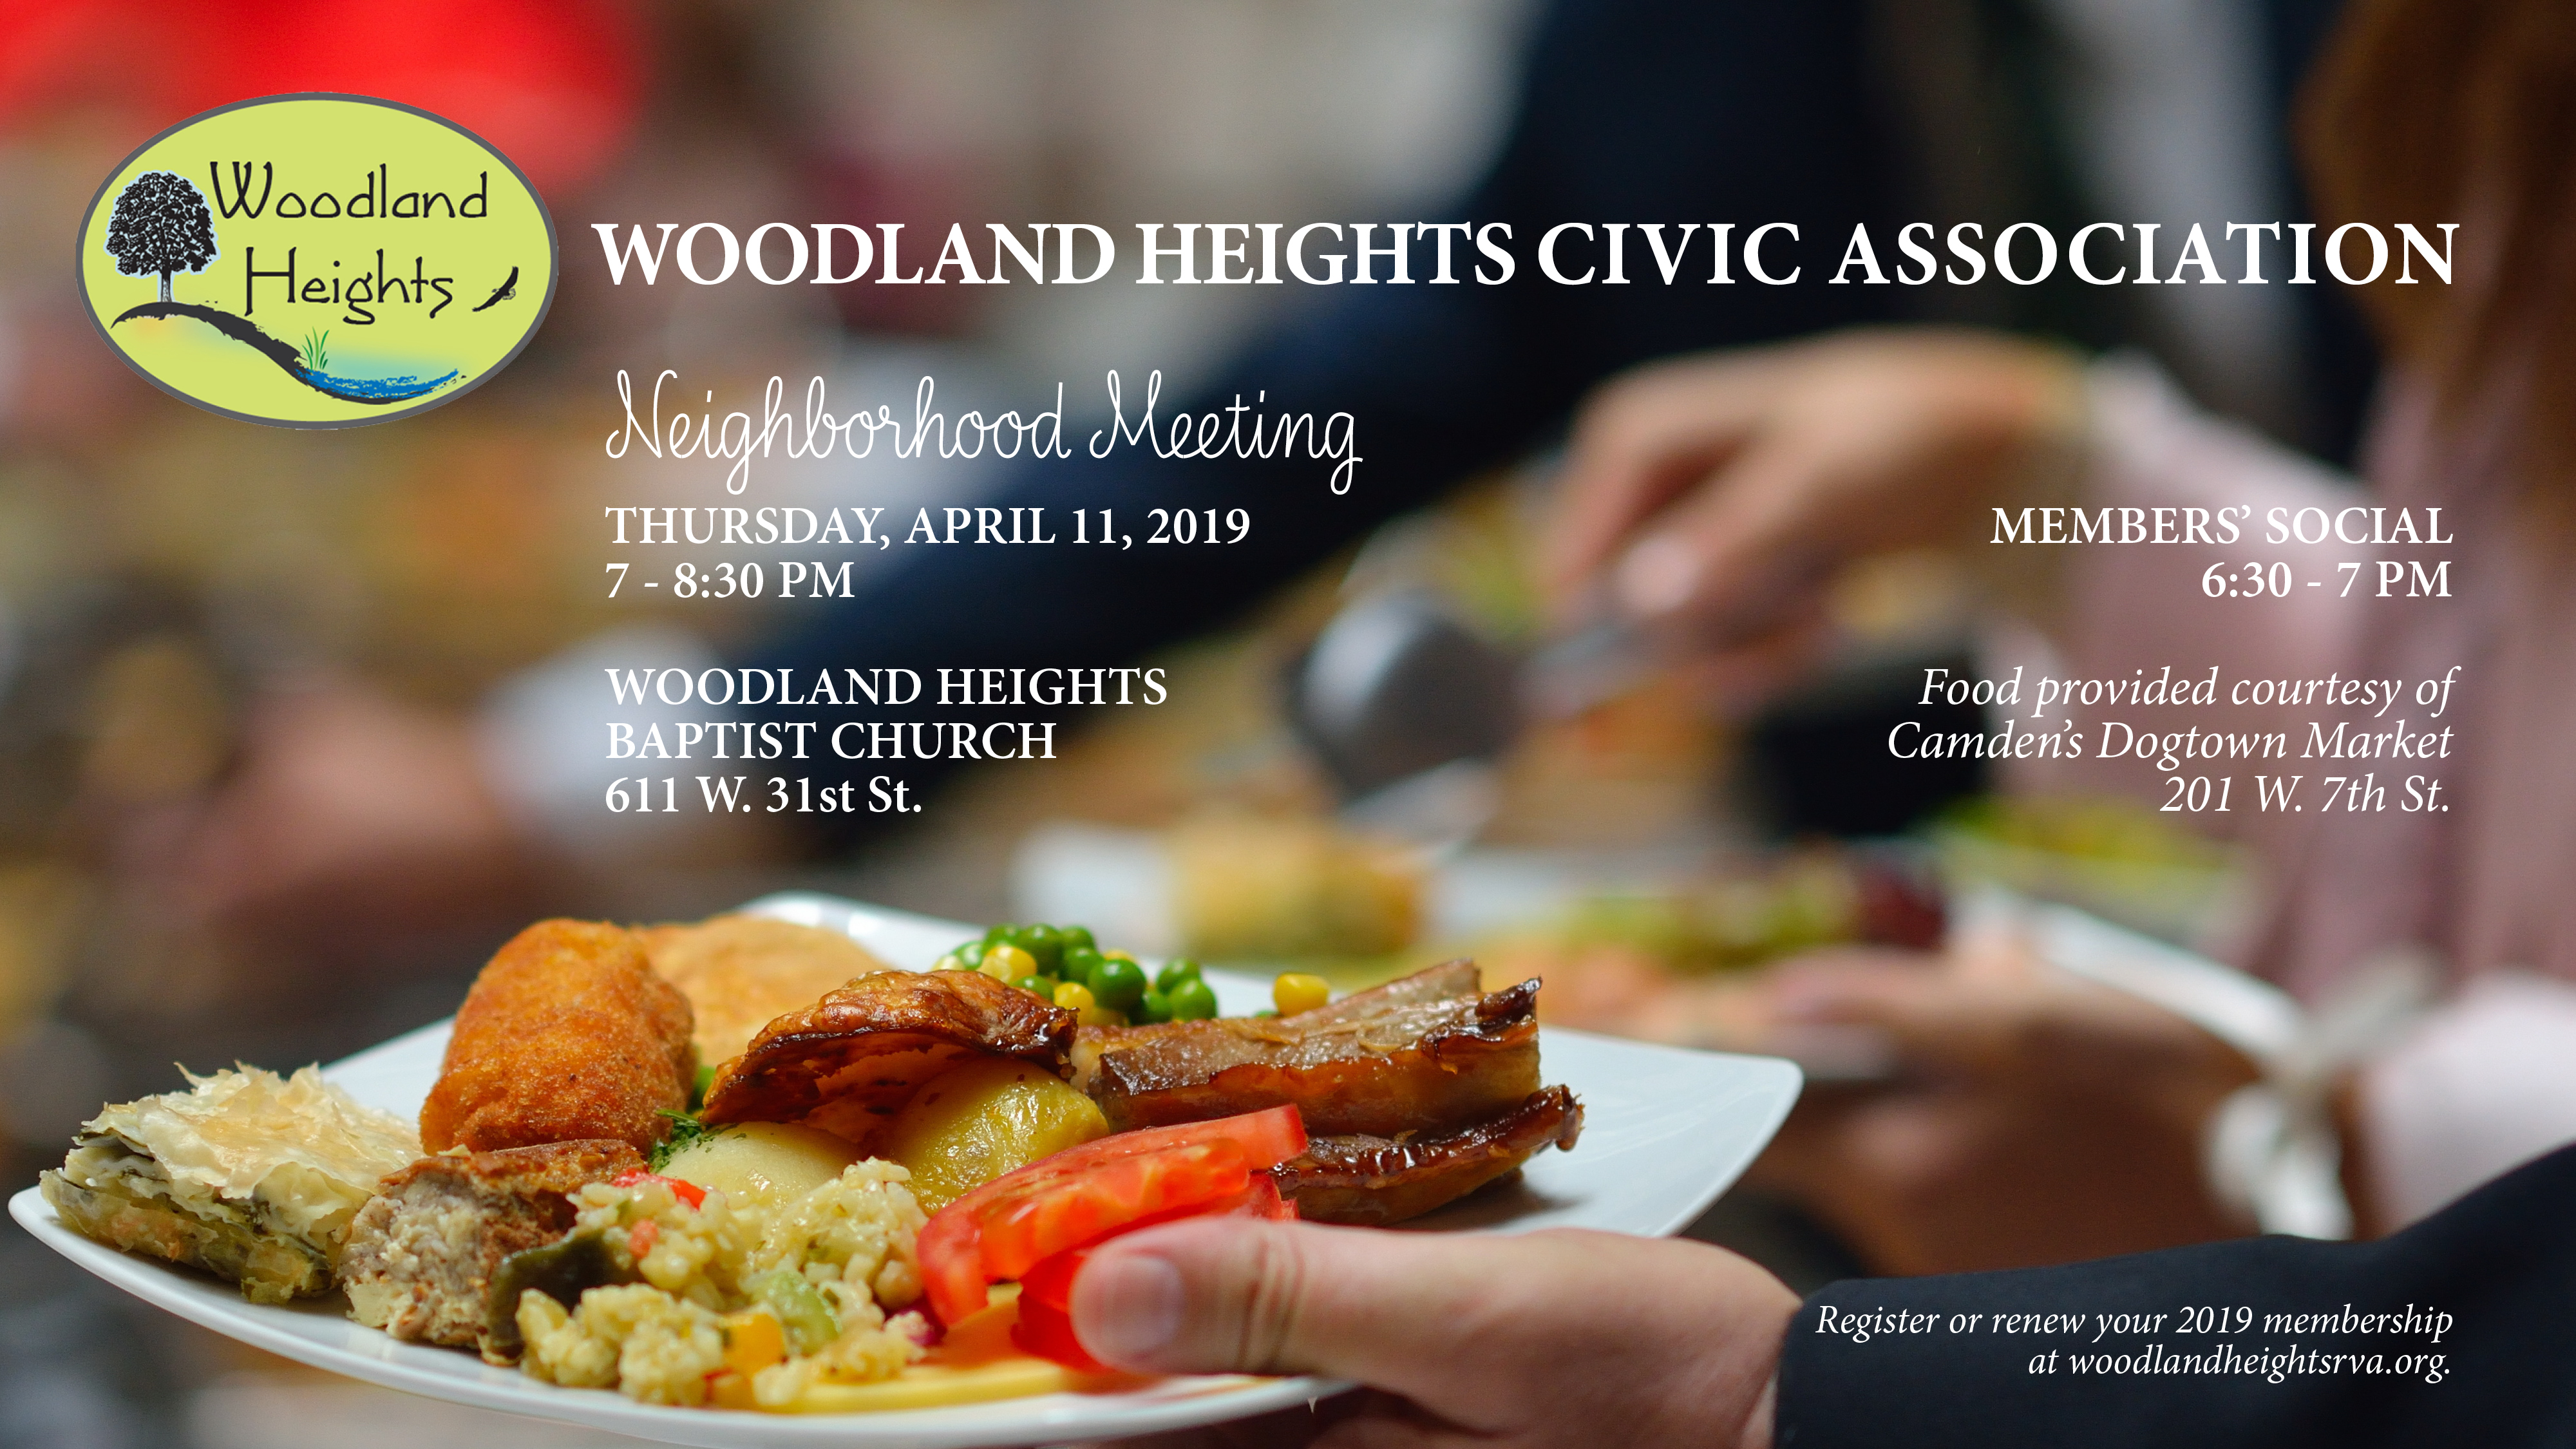 WHCA Neighborhood Meeting, April 11 at WH Baptist Church, 6:30-8:30 PM